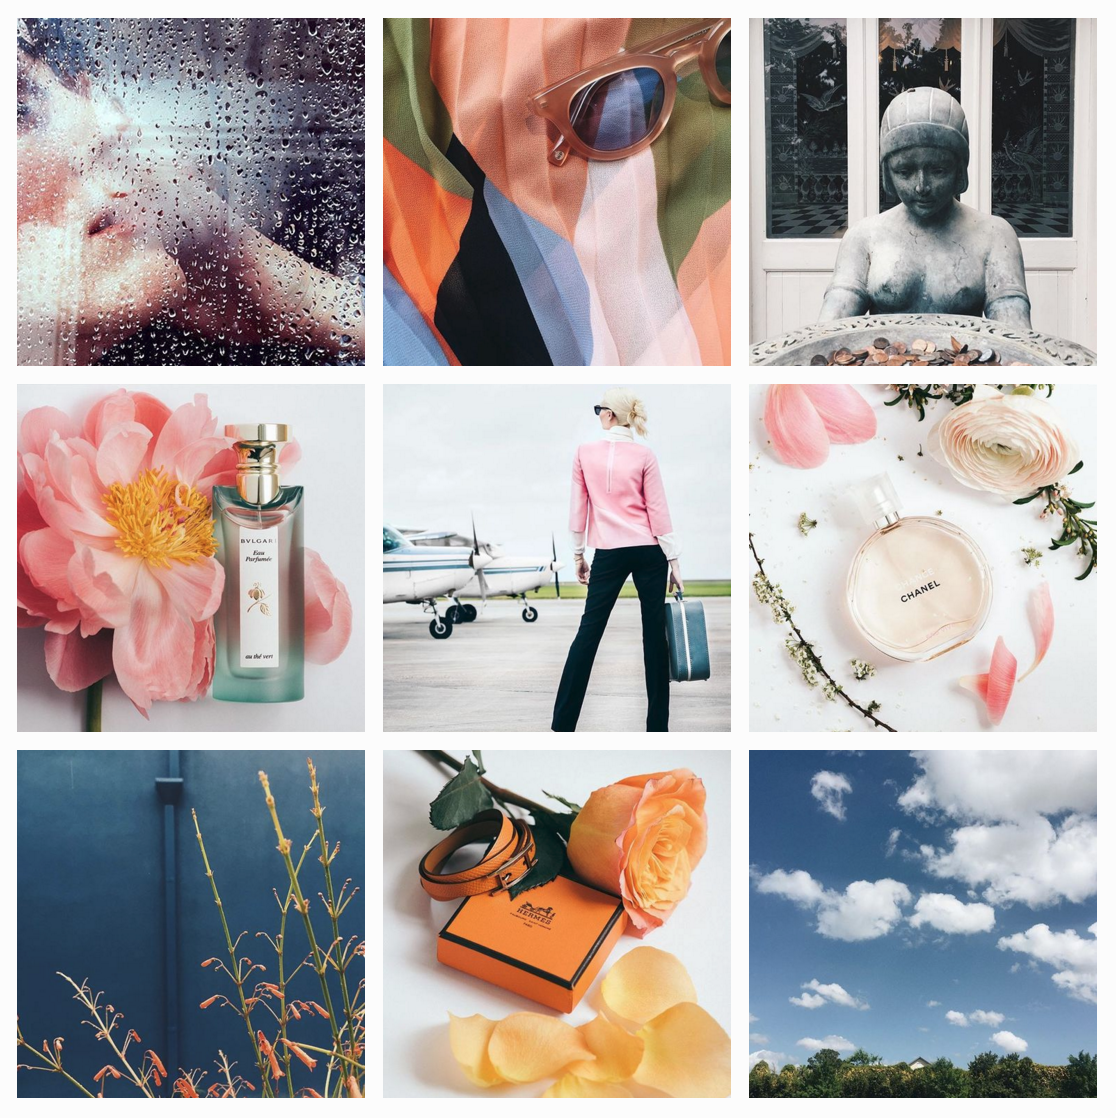 Augusta_Sagnelli_Photography_Spring_2016.png